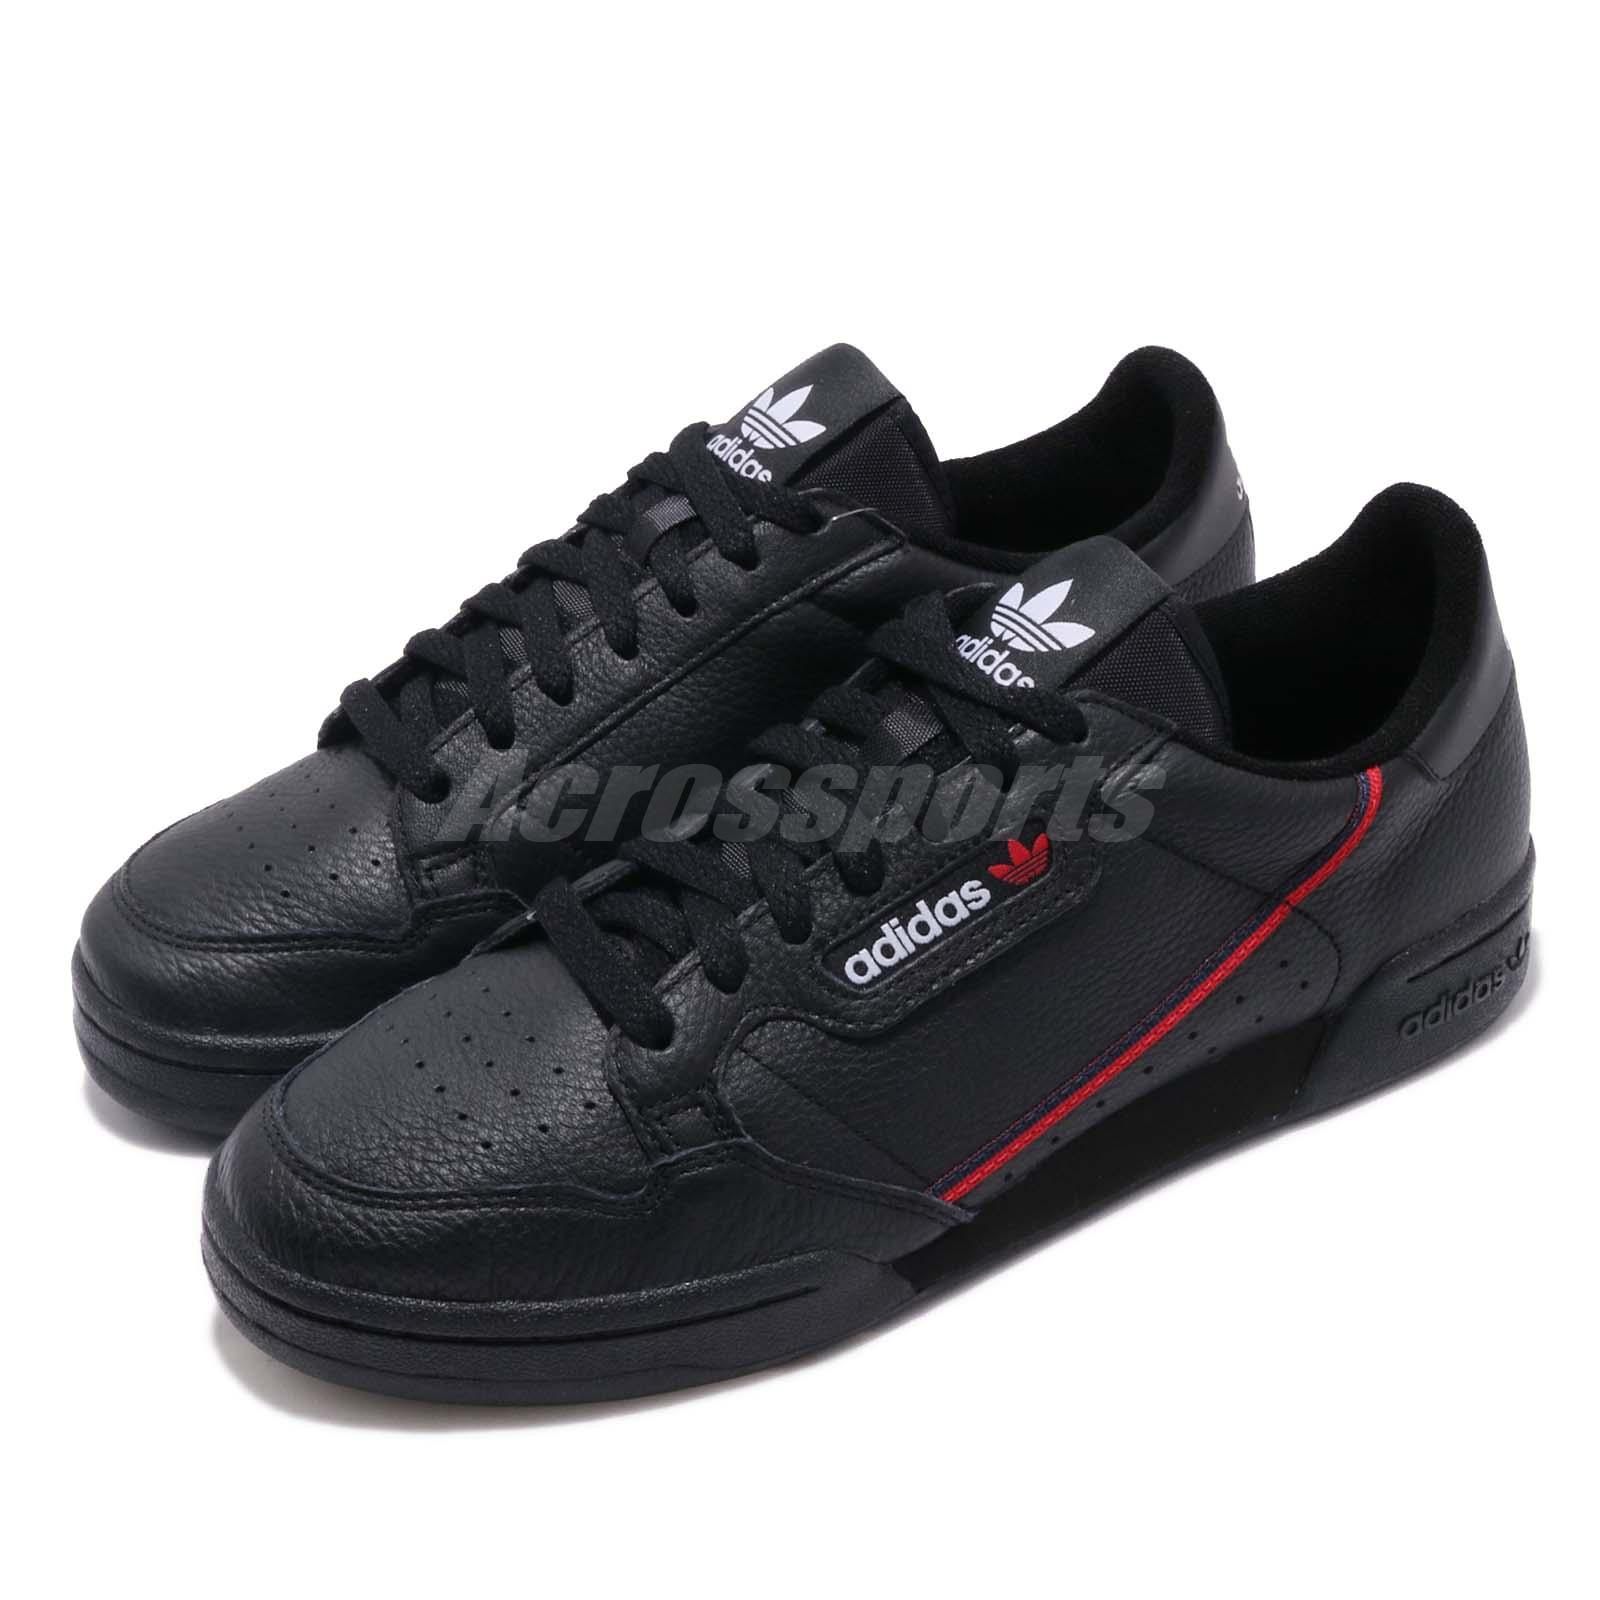 the latest 97084 9271a Details about adidas Originals Continental 80 Black Scarlet Men Classic  Casual Shoes G27707